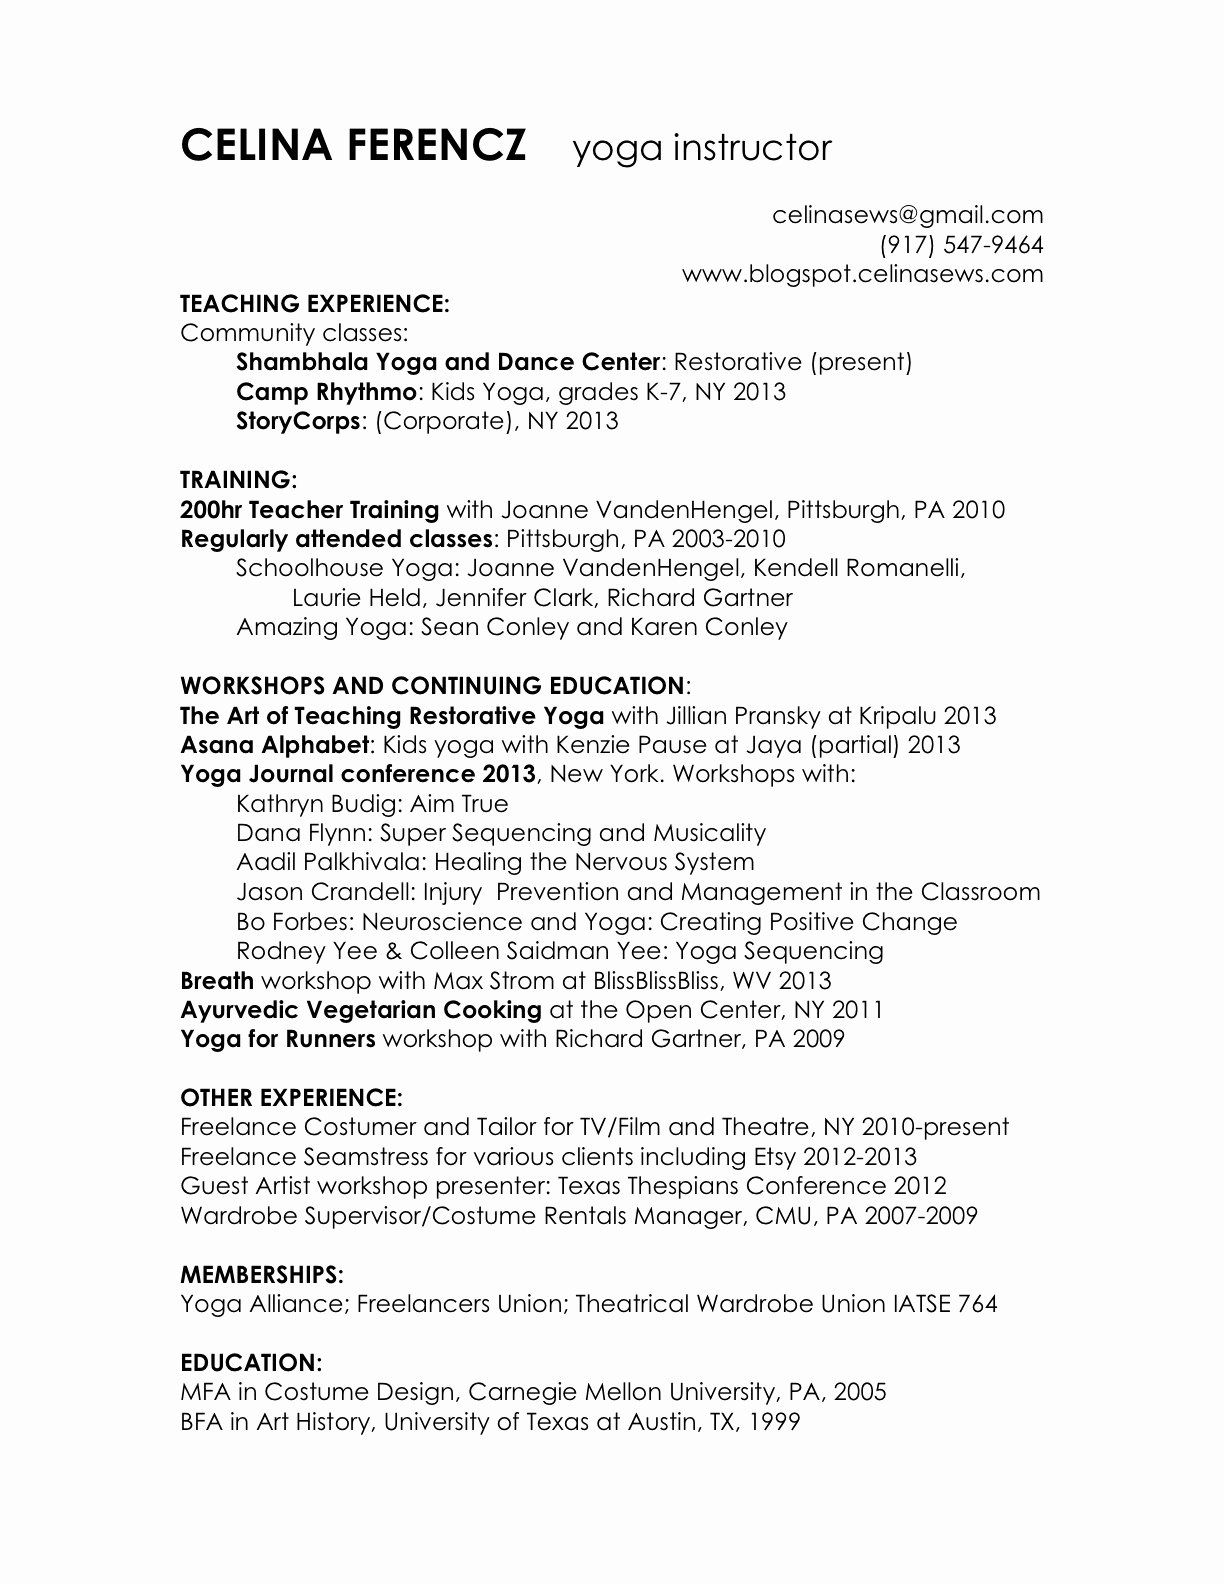 Senior Graphic Designer Resume Beautiful Doing Line Purchasing Buying A Quality Essay Paper Graphic Design Resume Resume Design Good Resume Examples